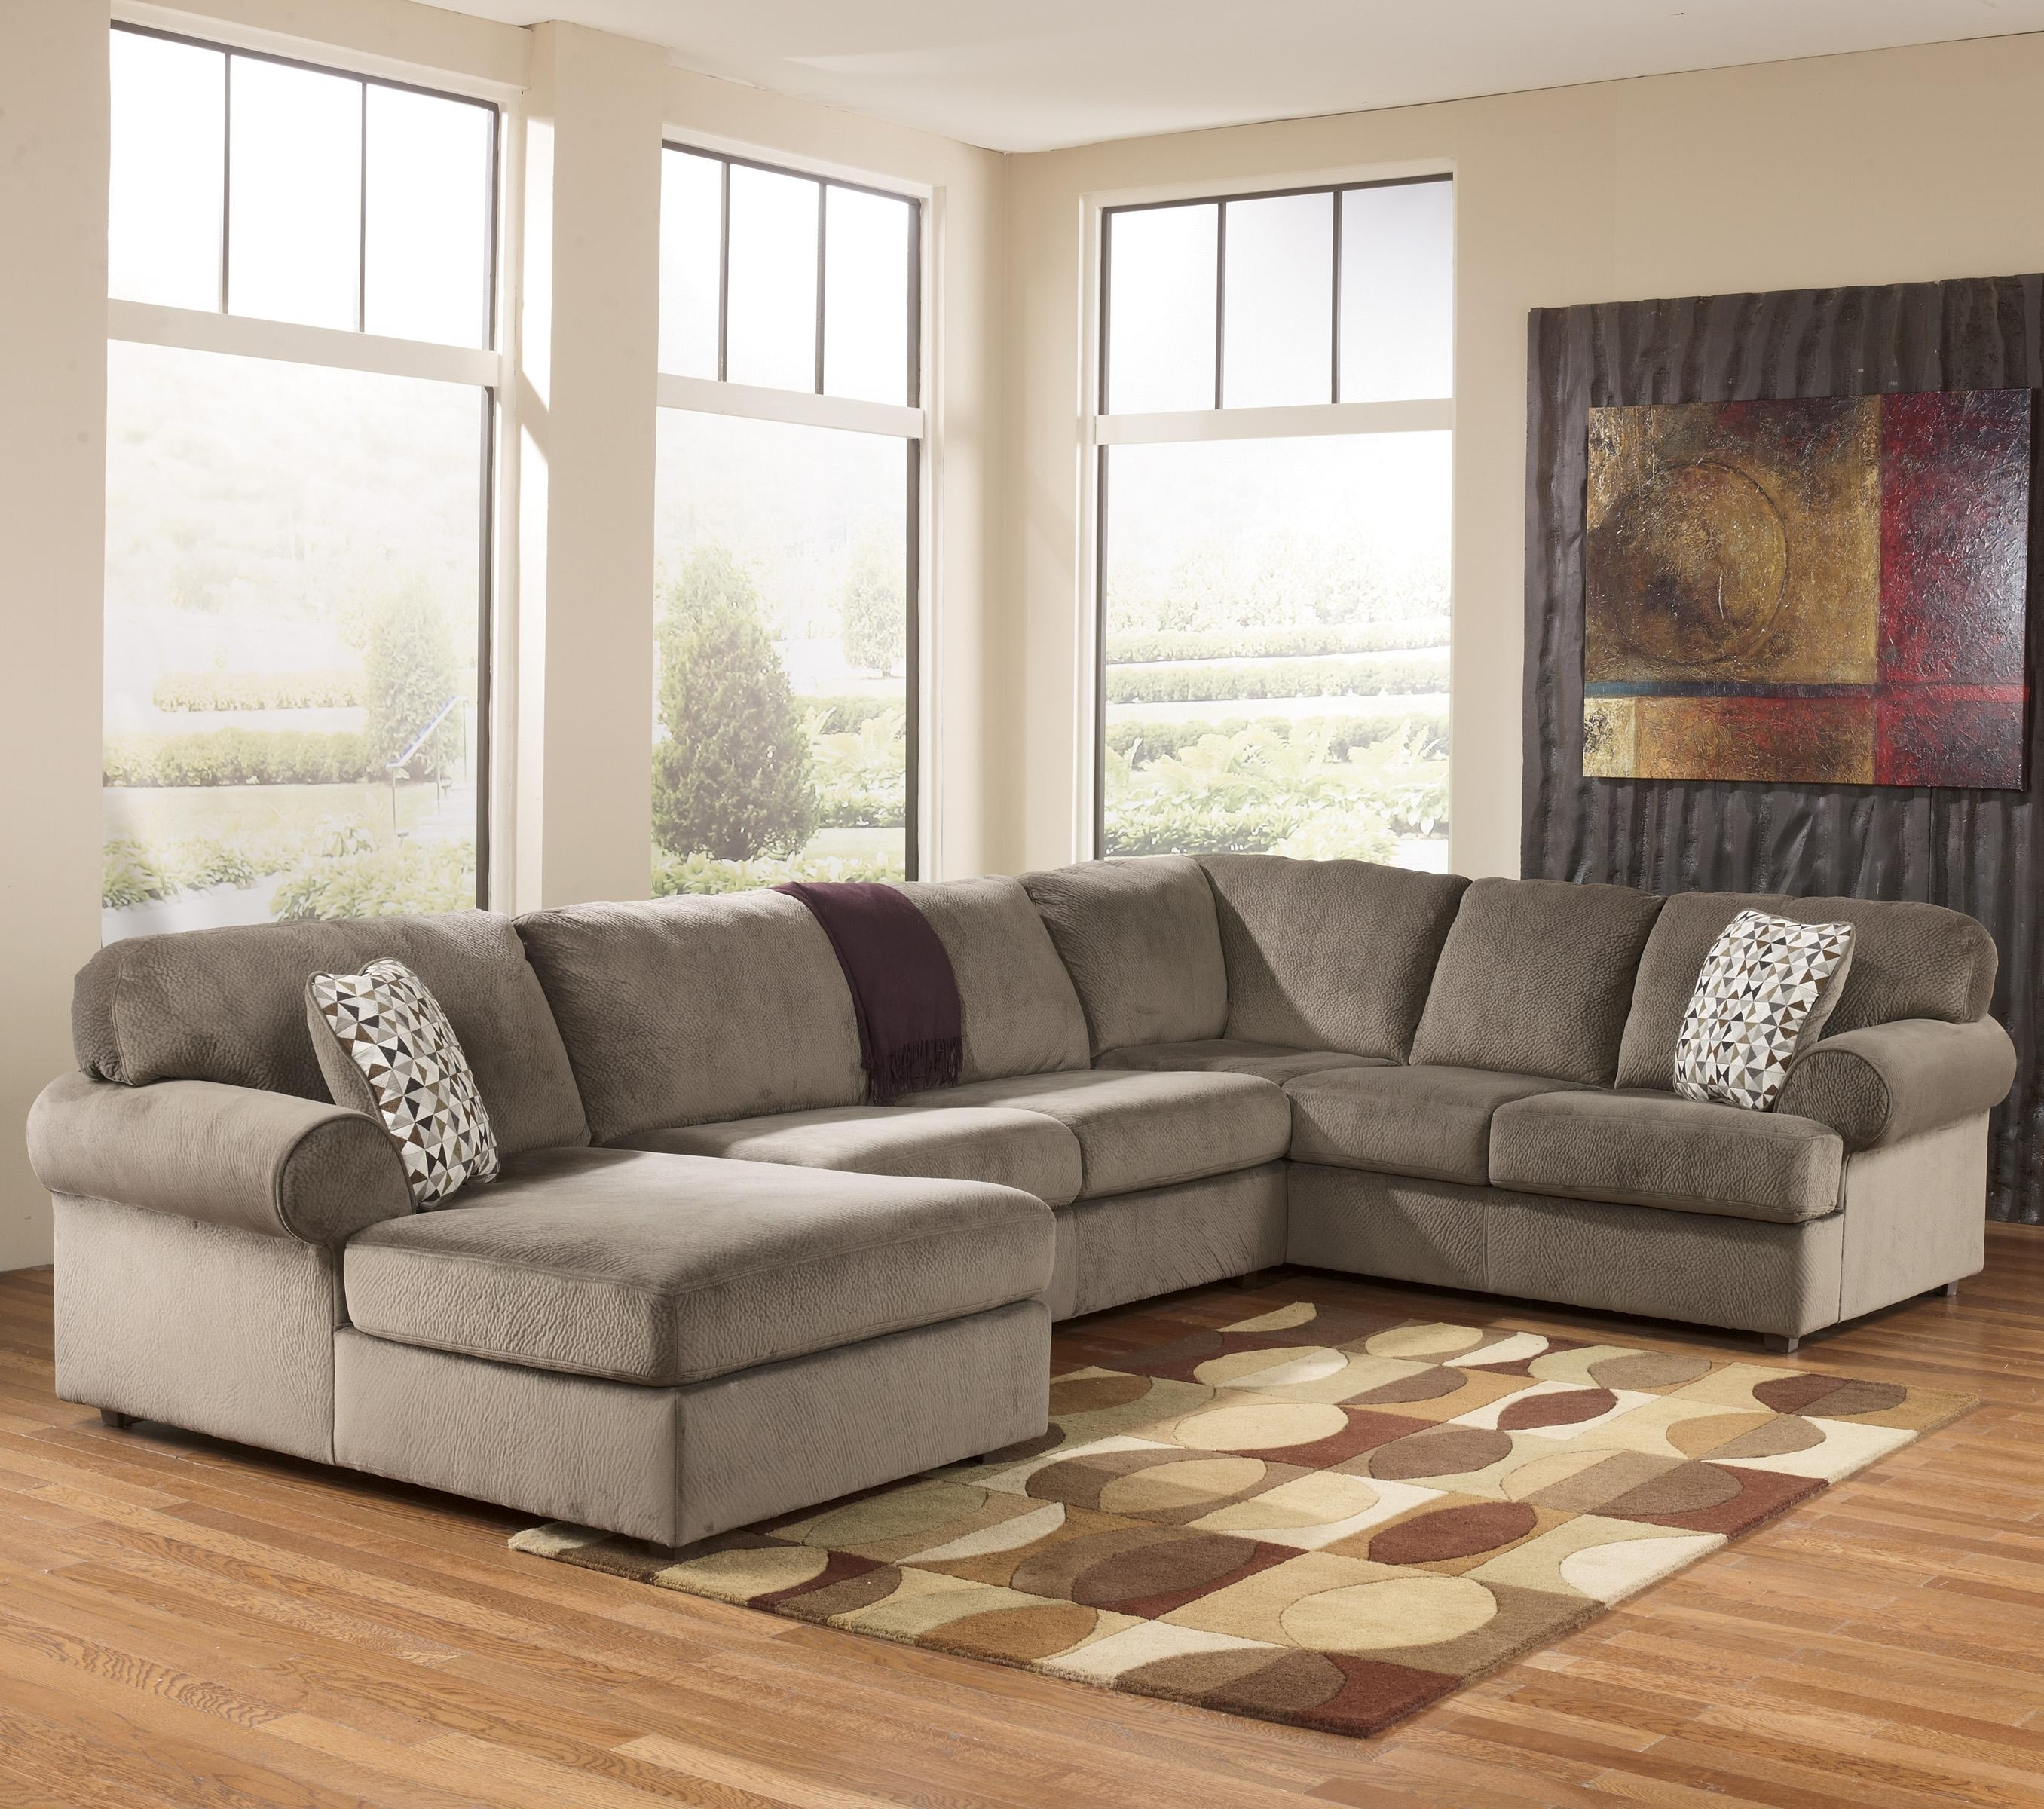 Signature Designashley Jessa Place – Dune Casual Sectional Inside Current El Paso Texas Sectional Sofas (View 6 of 20)